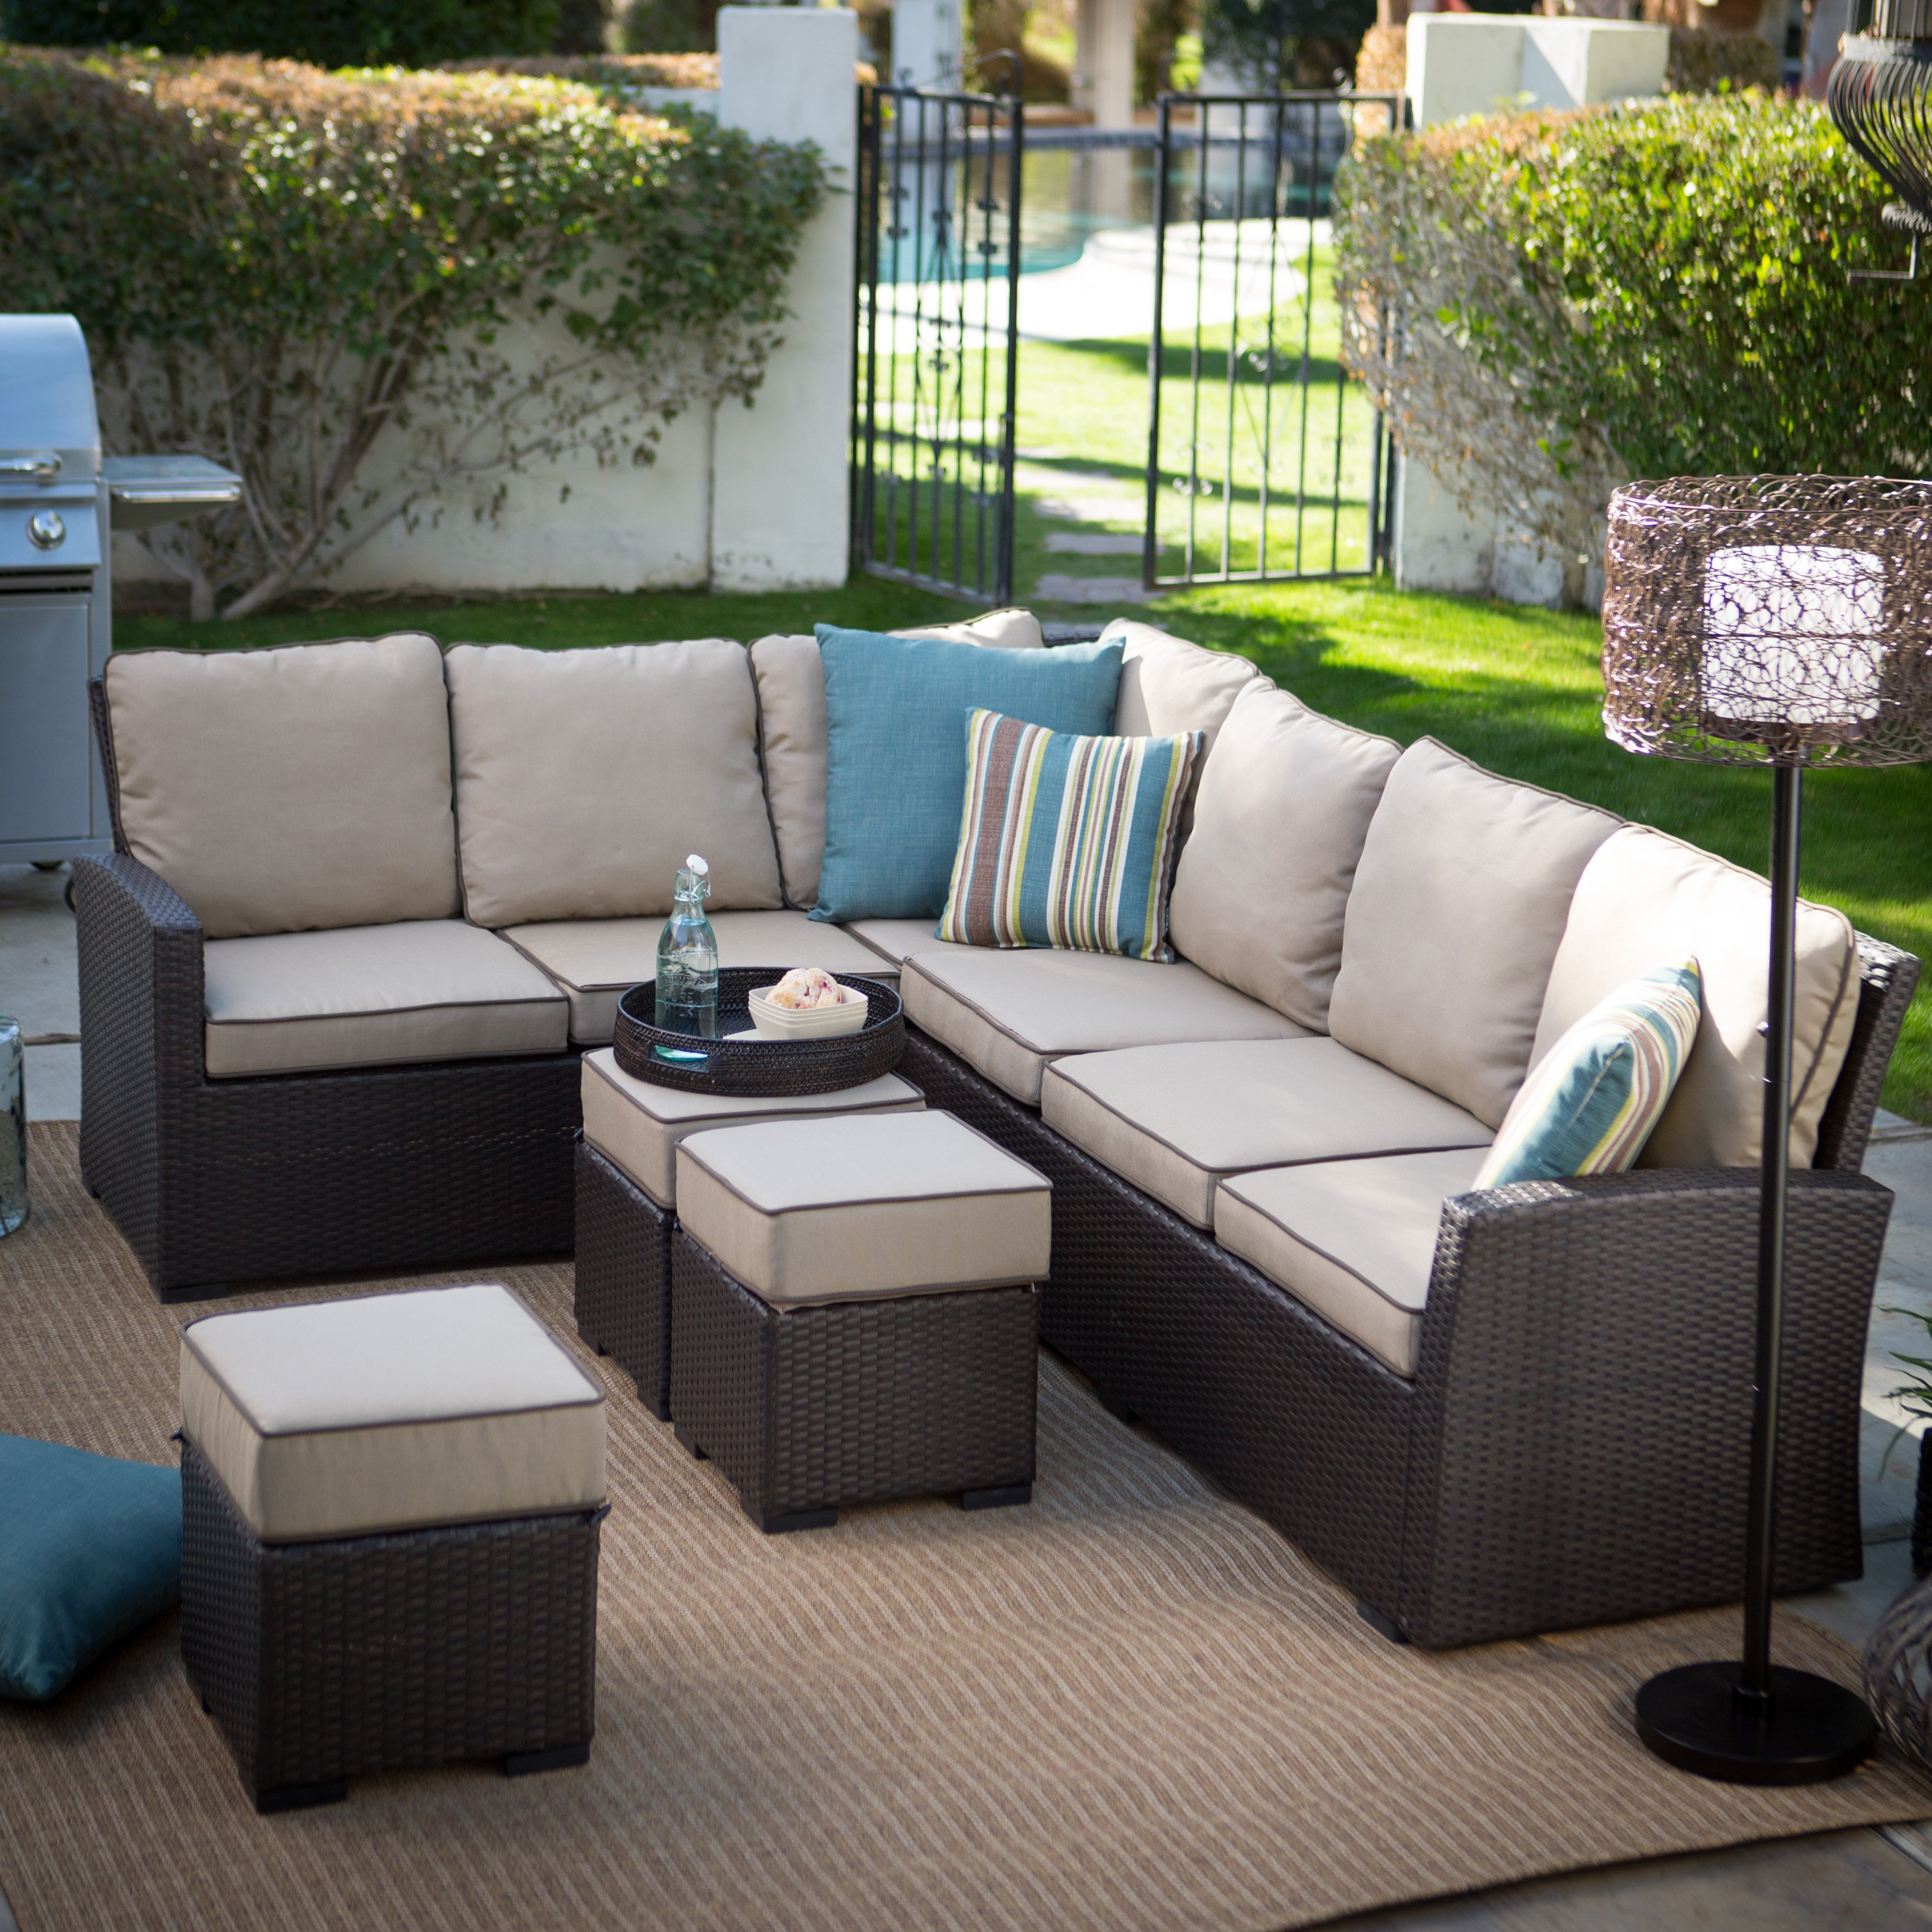 Add the Beauty of Outdoor Sectional Sofa to your Compound ... on Outdoor Loveseat Sets  id=21456